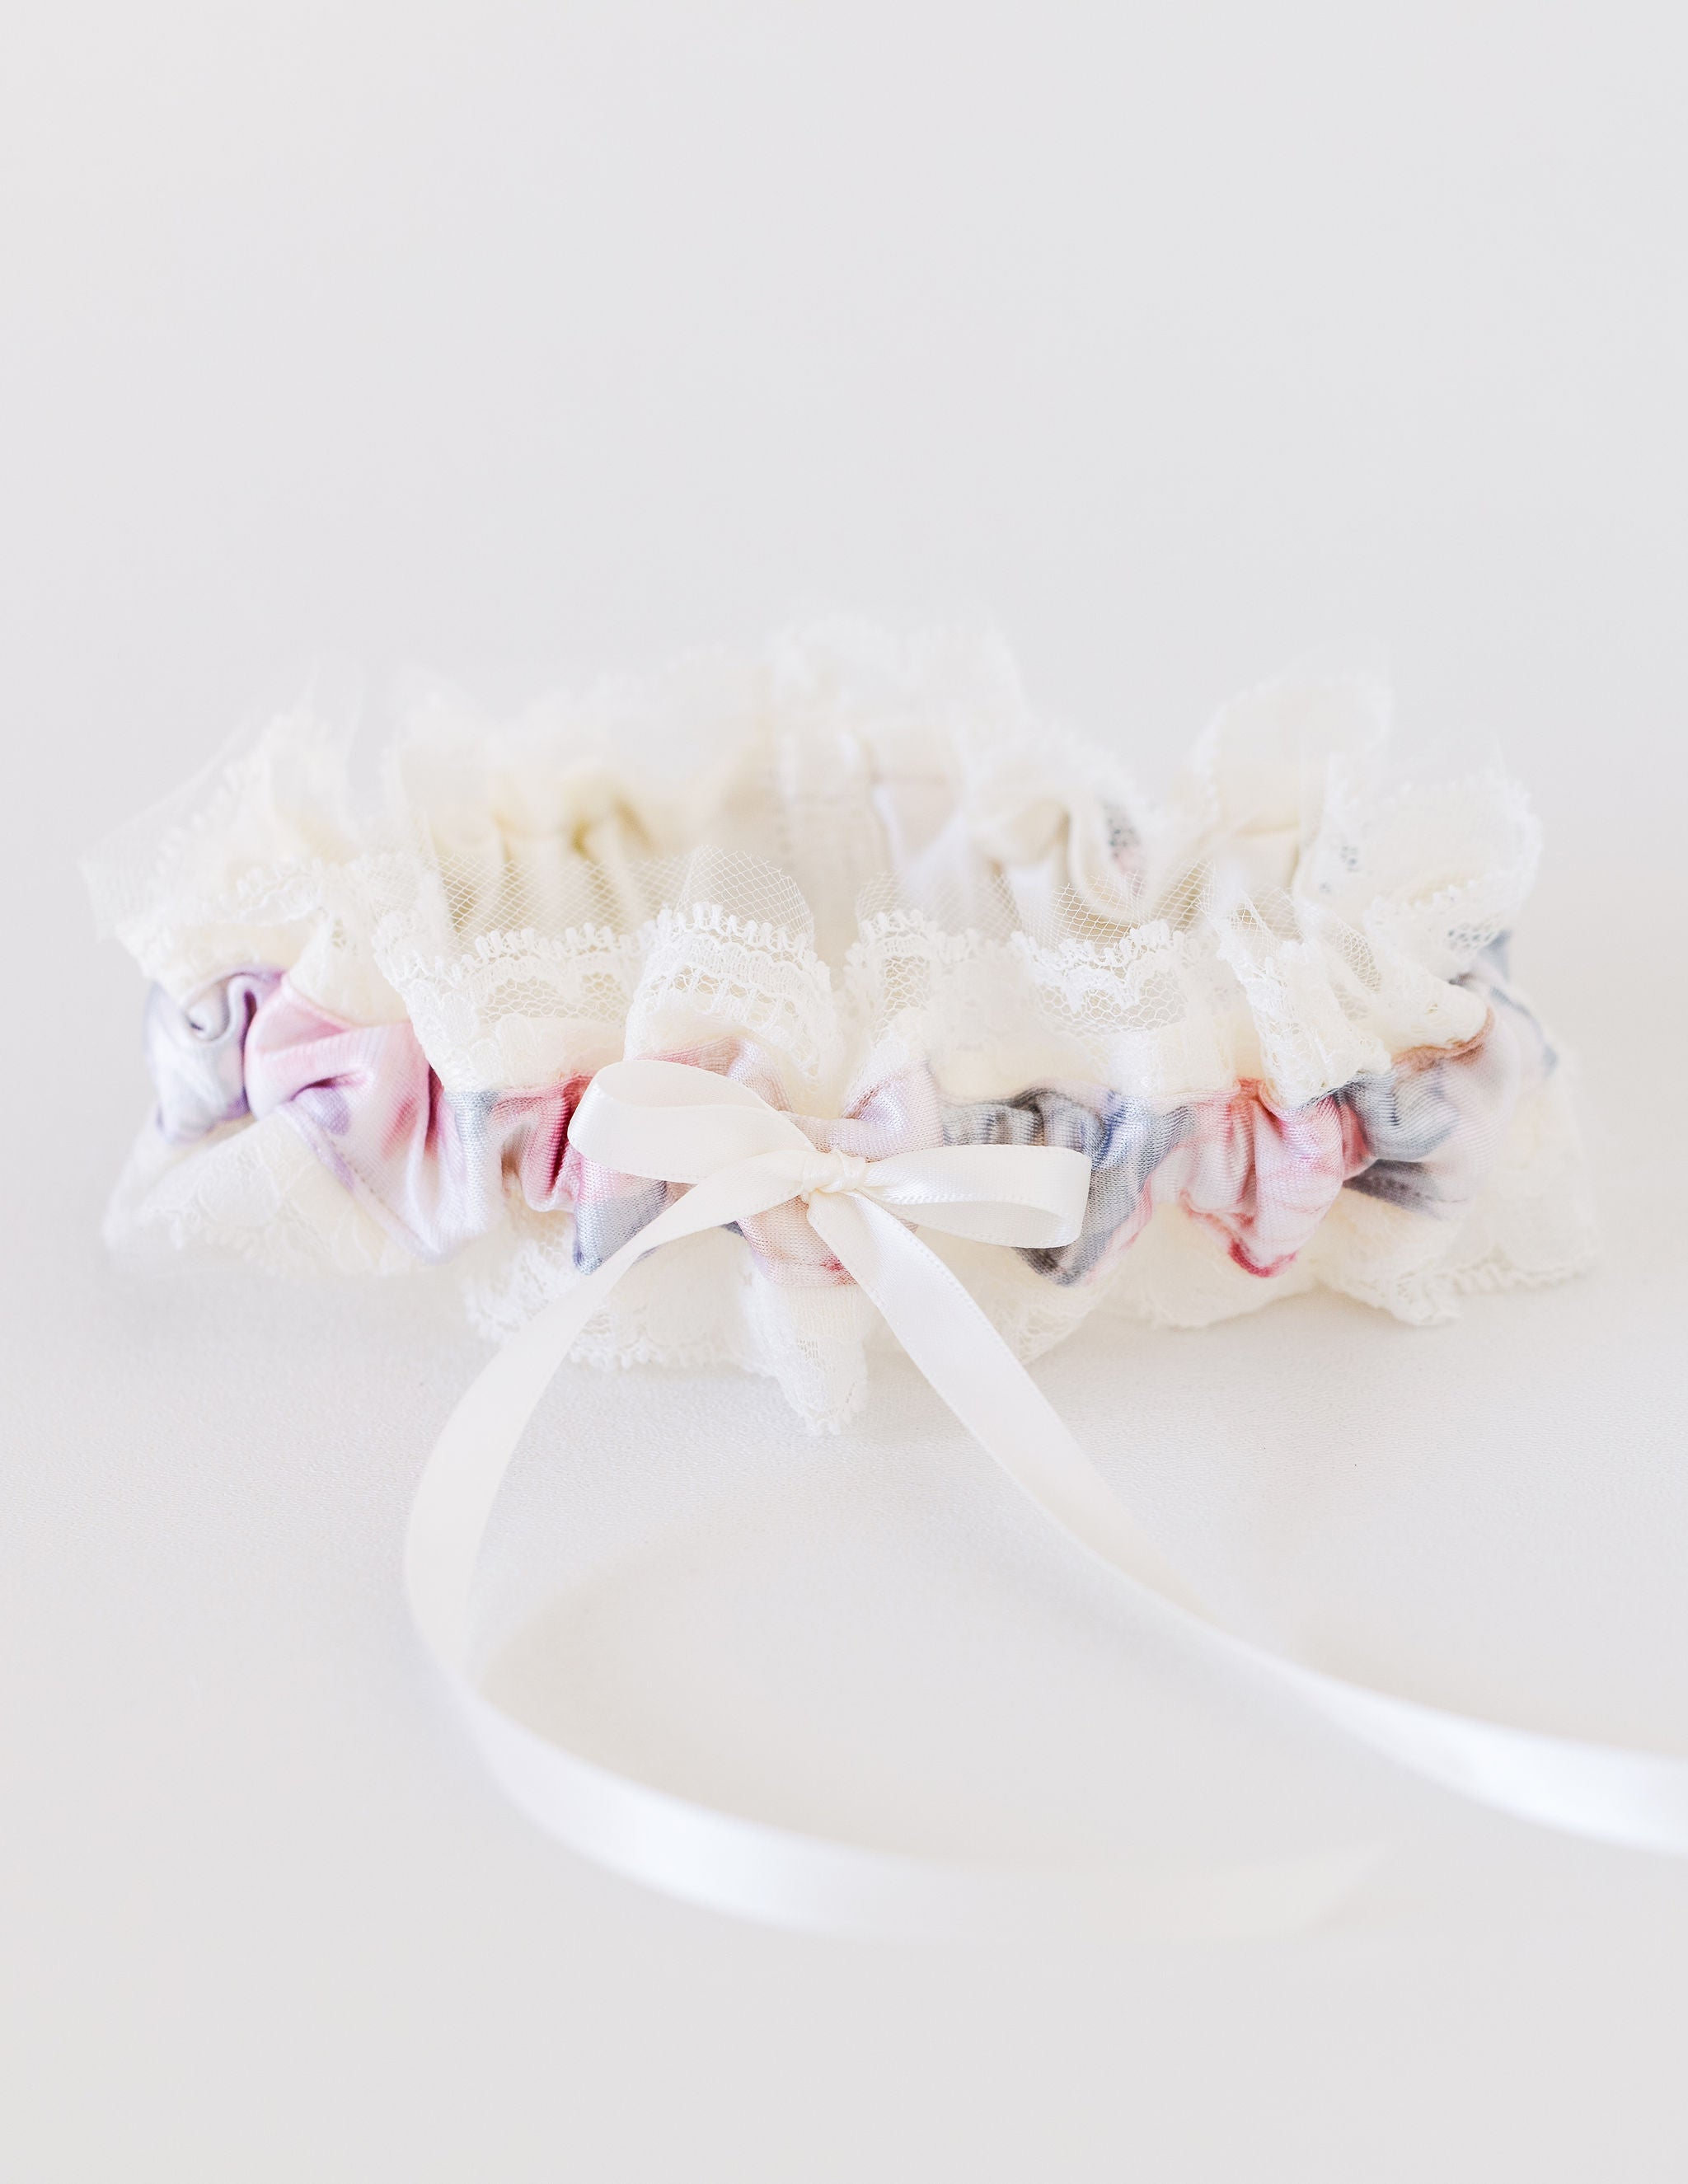 custom wedding garter heirloom made from the bride's grandmother's silk floral robe by The Garter Girl